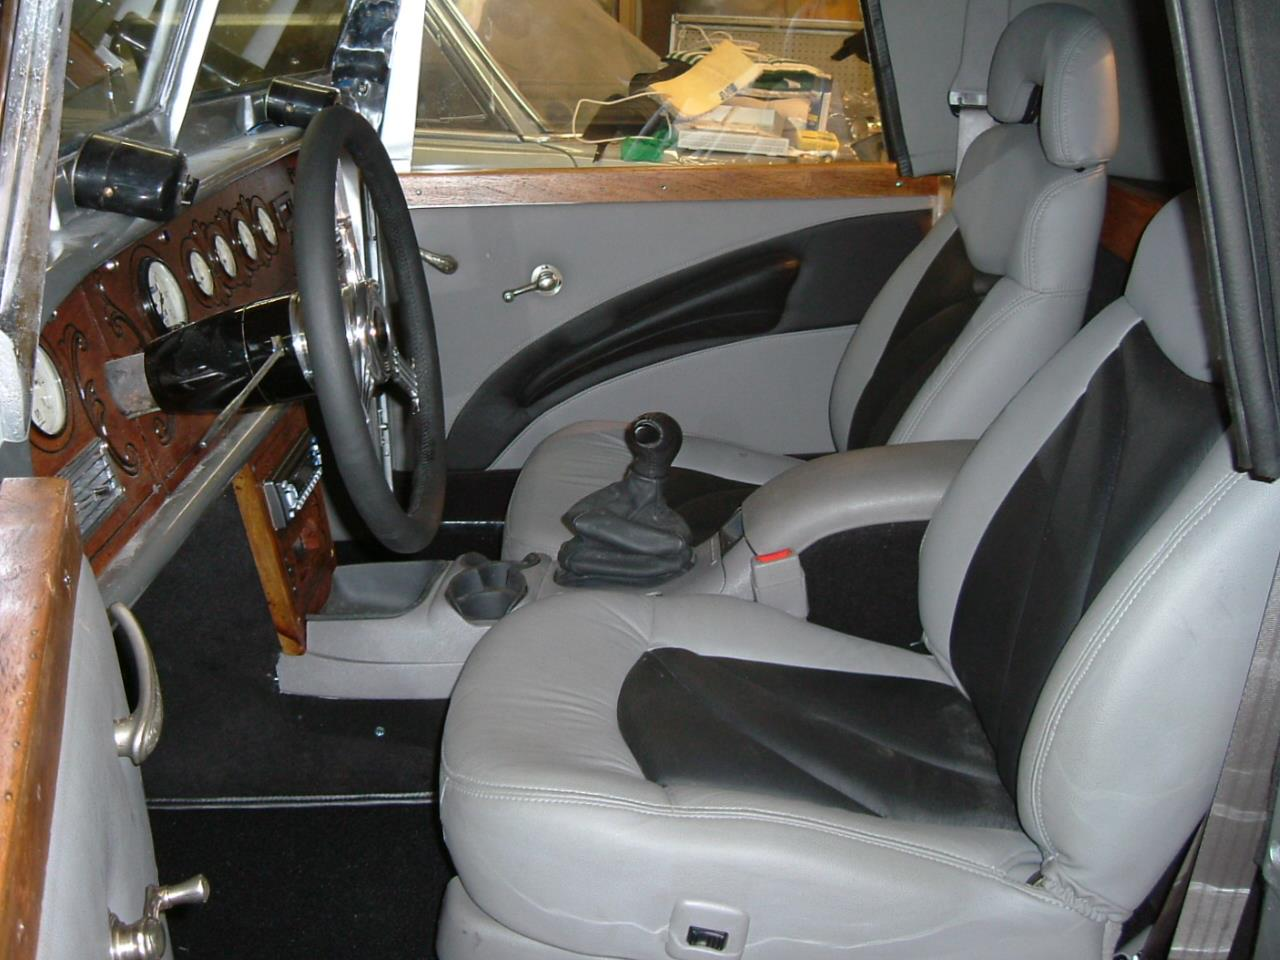 1931 Rolls-Royce Phantom II for sale in White Pigeon, MI – photo 11